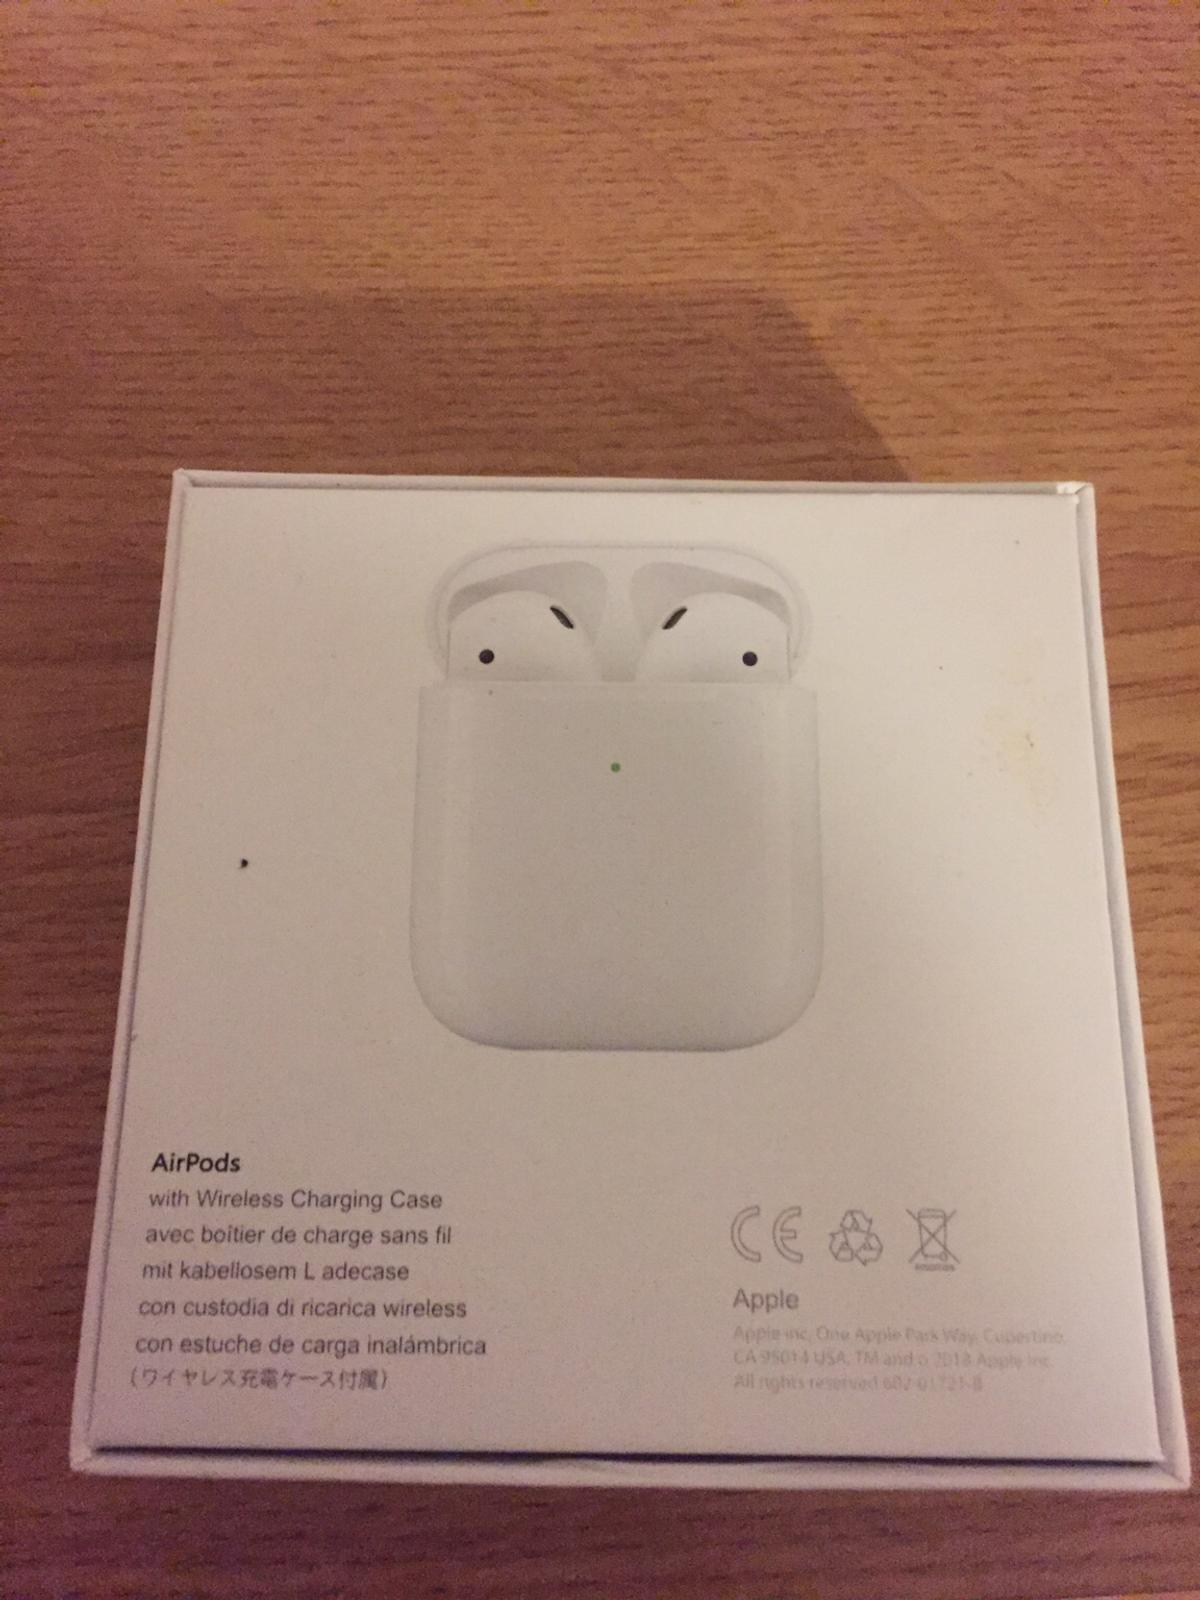 airpods 2 box image